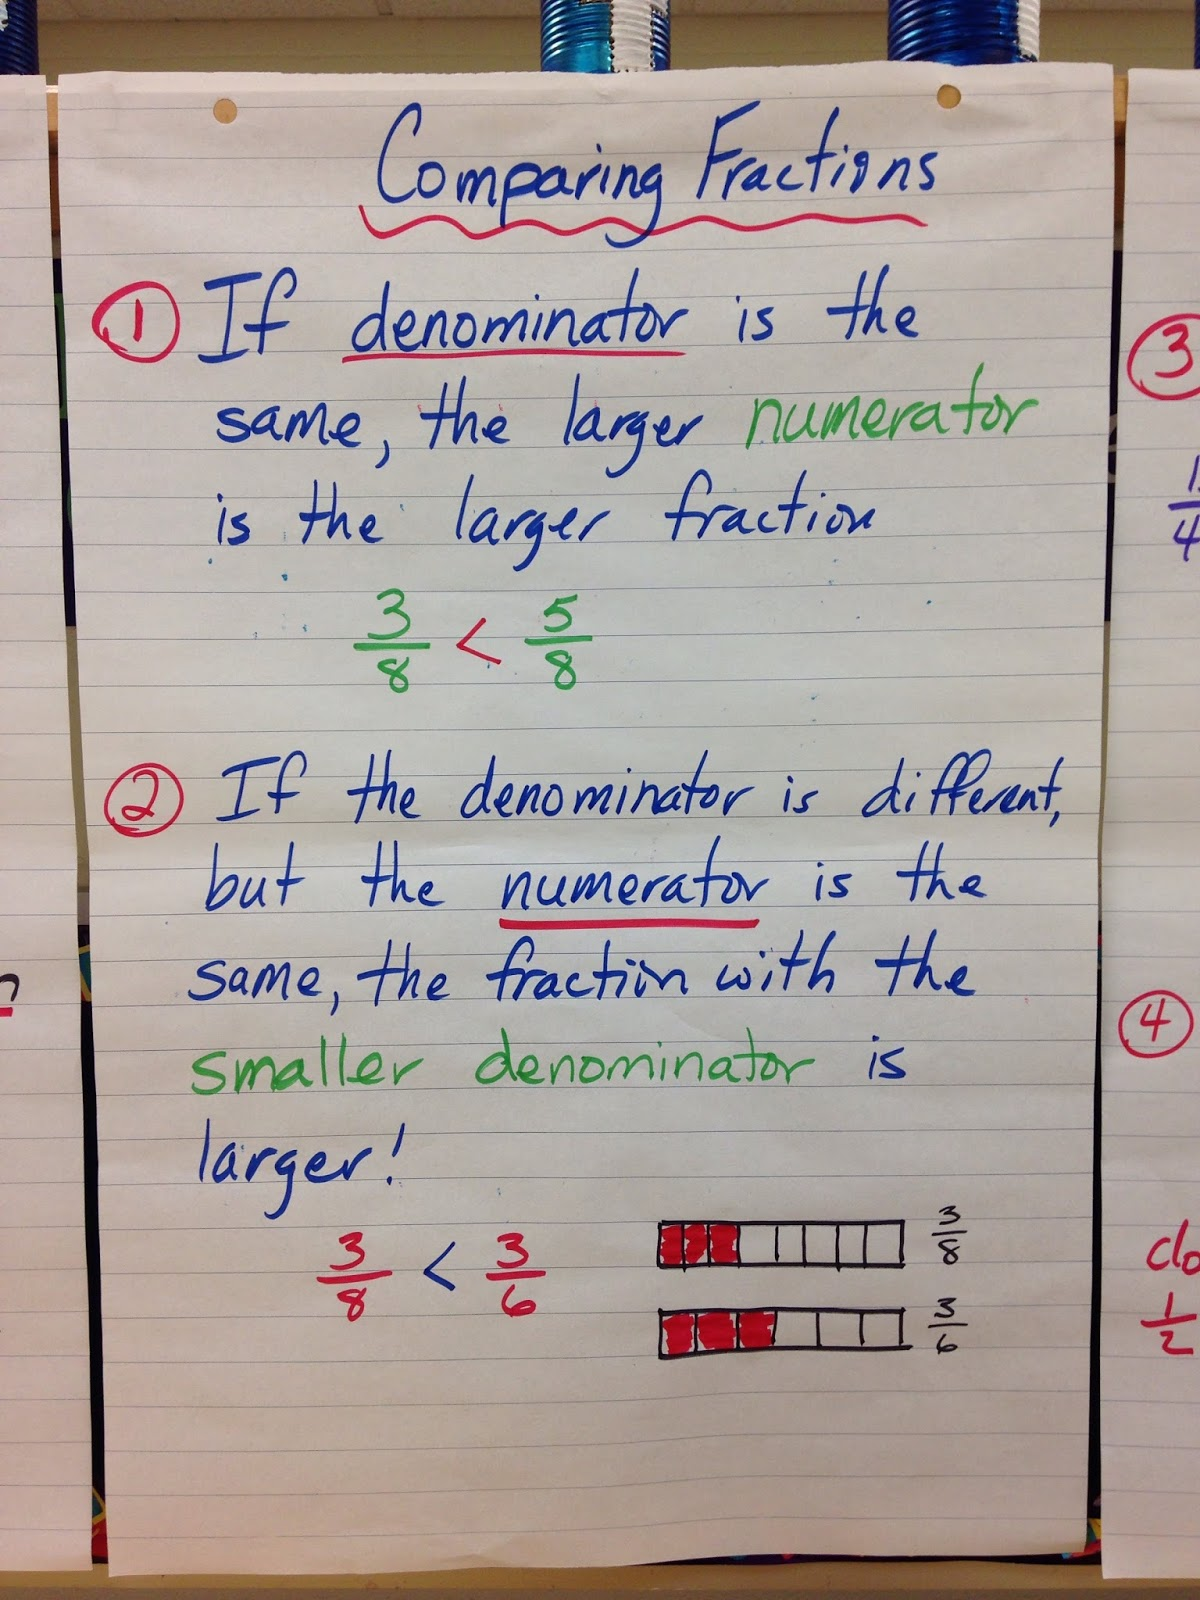 mr. pouliot's classroom blog: comparing and ordering fractions